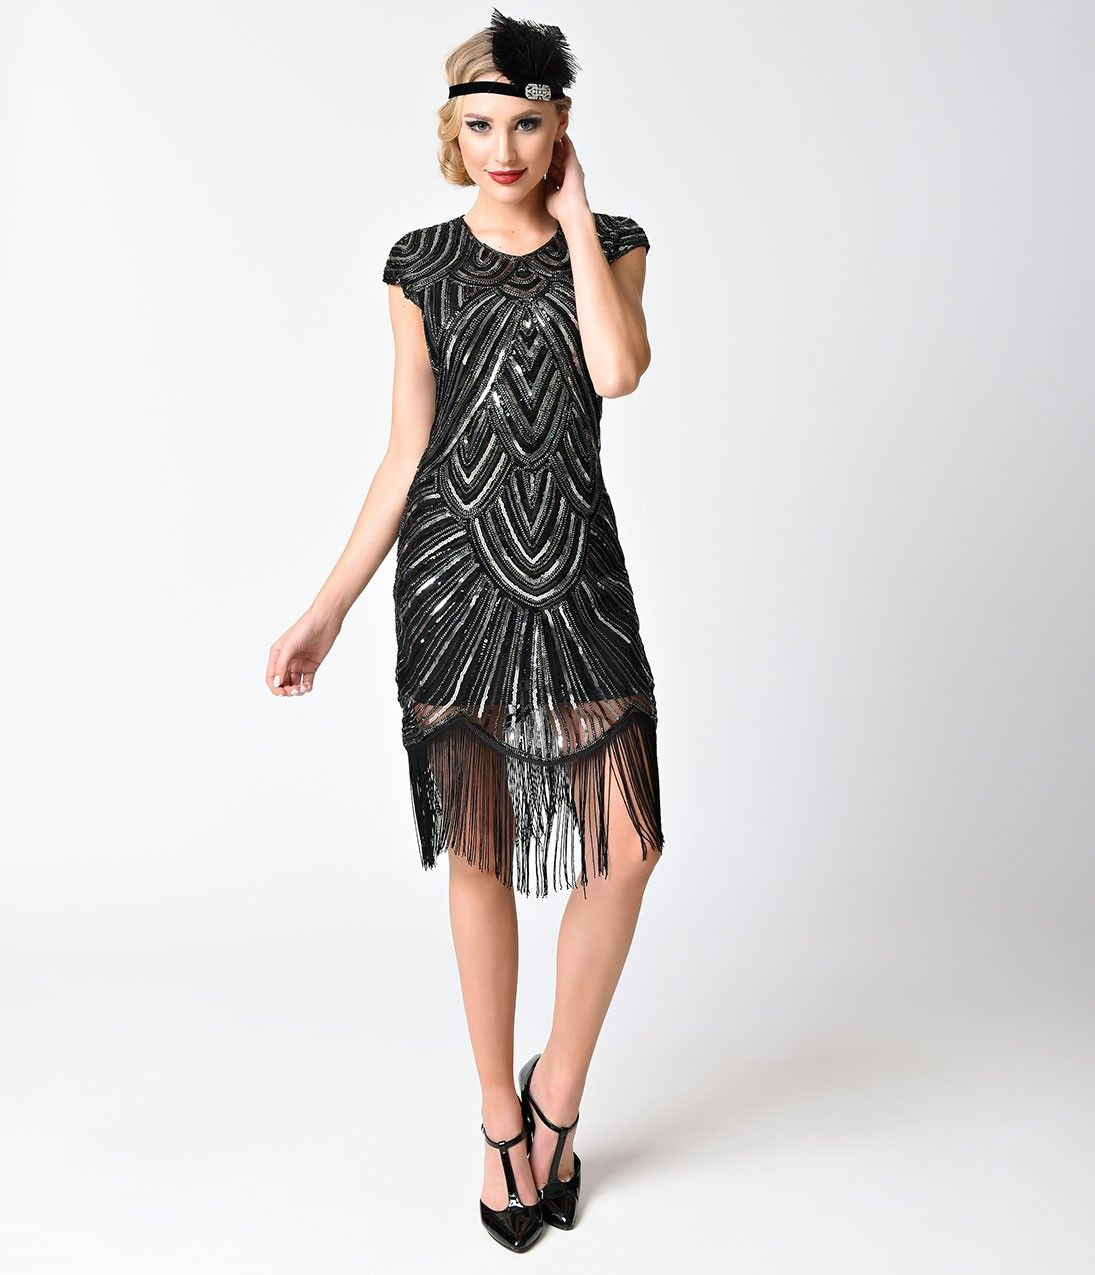 How to dress in 1920s style dress